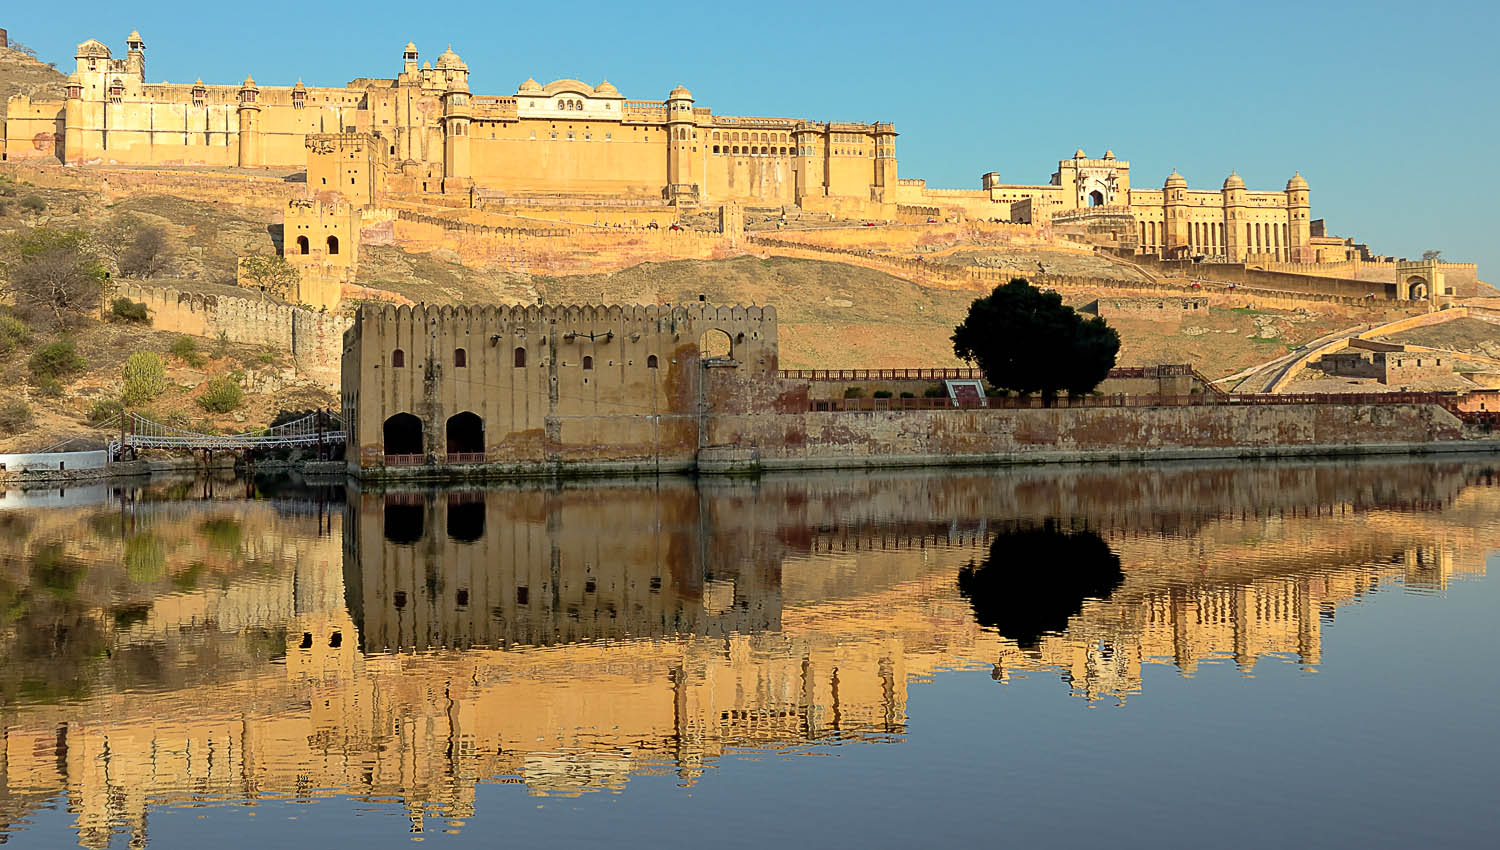 Rajasthan's many forts are impressive structures. Image:  ©    Uwe Sowinski